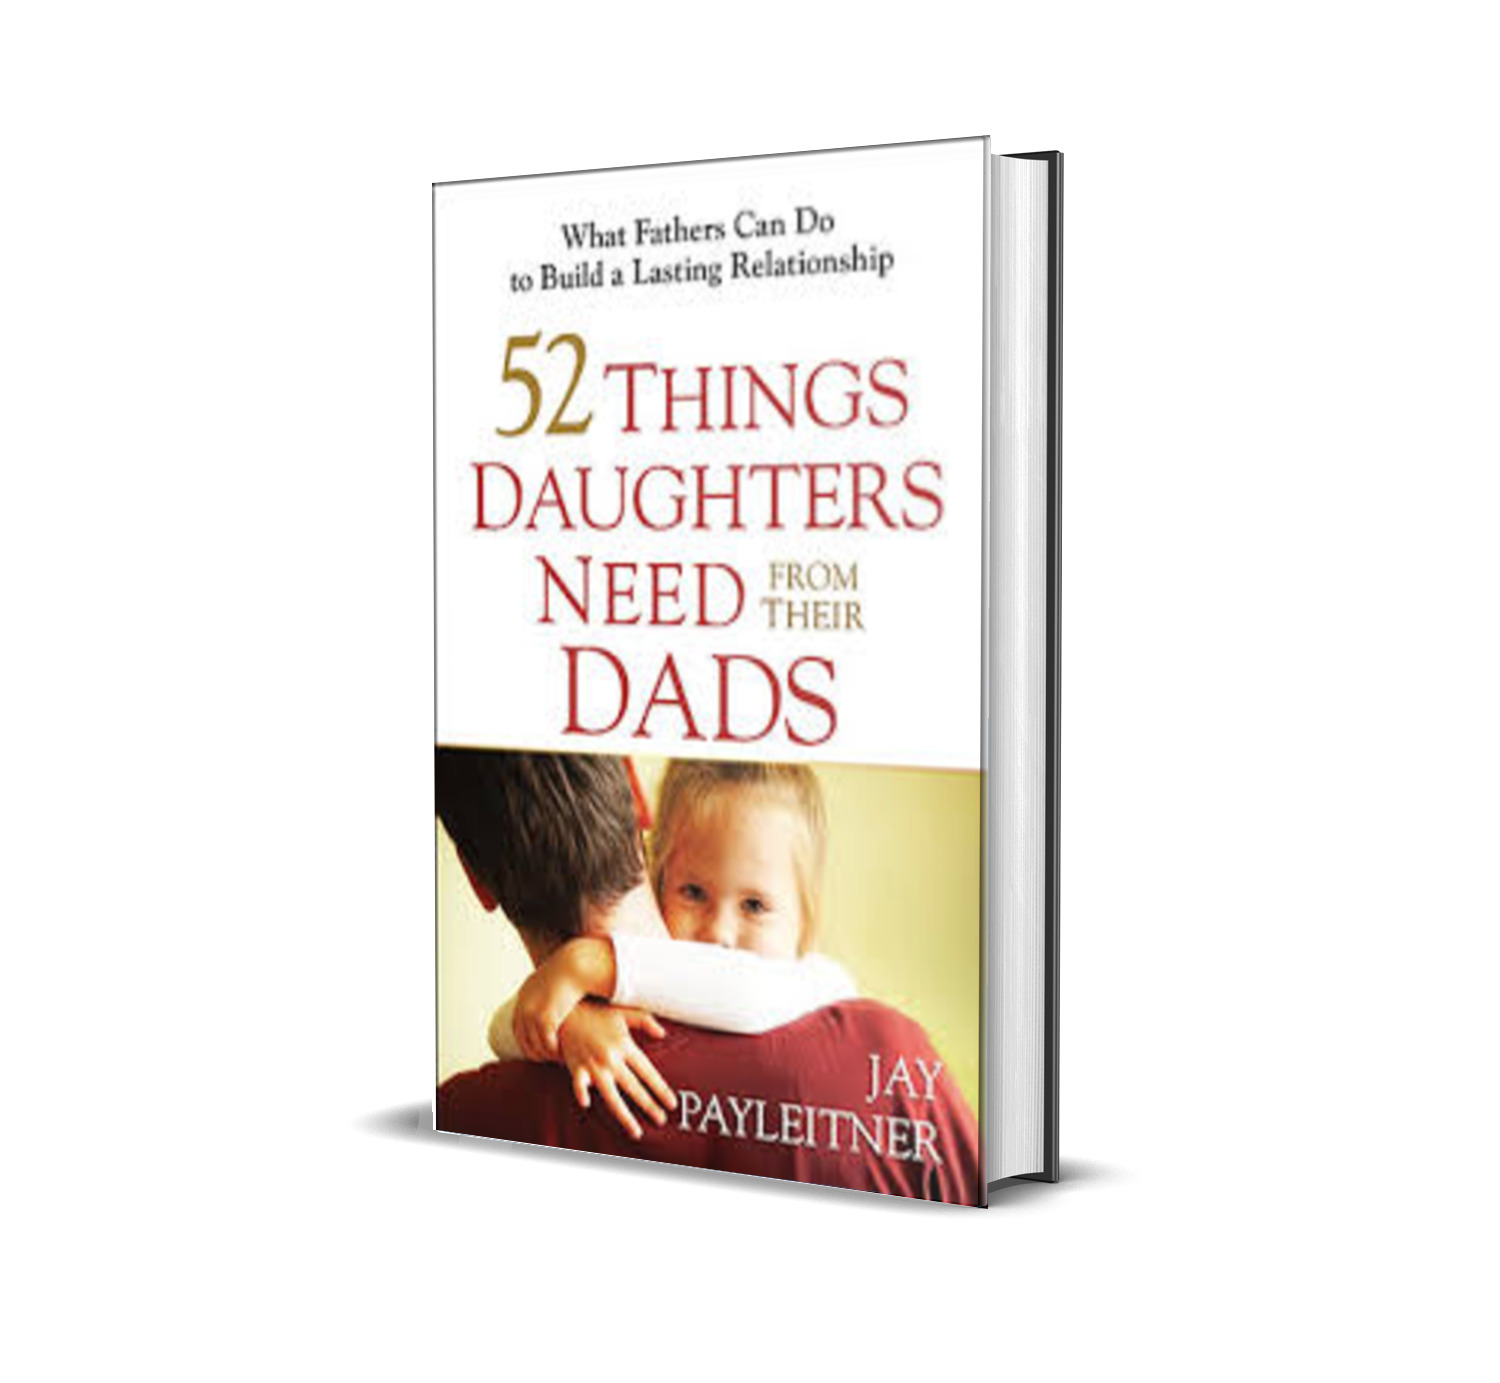 52 things daughters need from their dad-jay payleitner